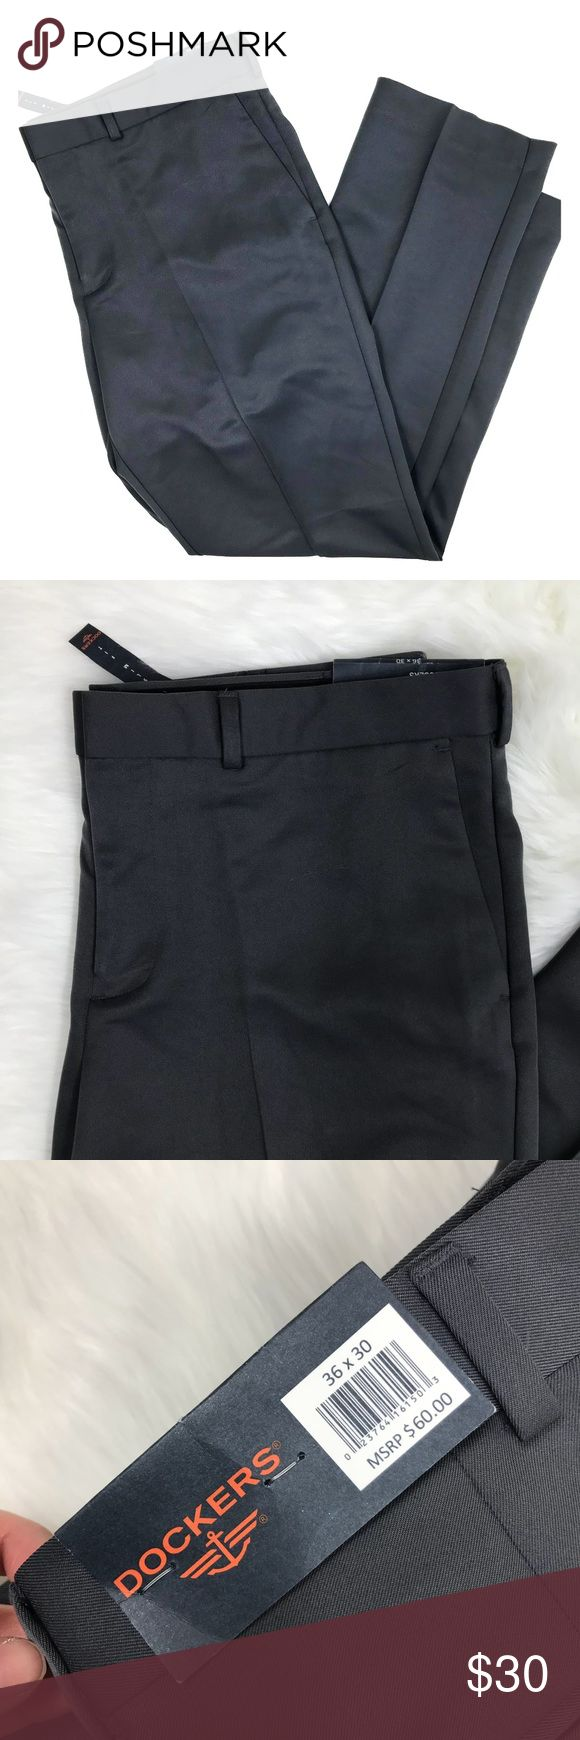 NWT Dockers Slim Fit Dress Pant 36x30 NWT Dockers Slim Fit Dress Pant 36x30. In perfect new with tags condition. Retails $60. Dockers Pants Dress